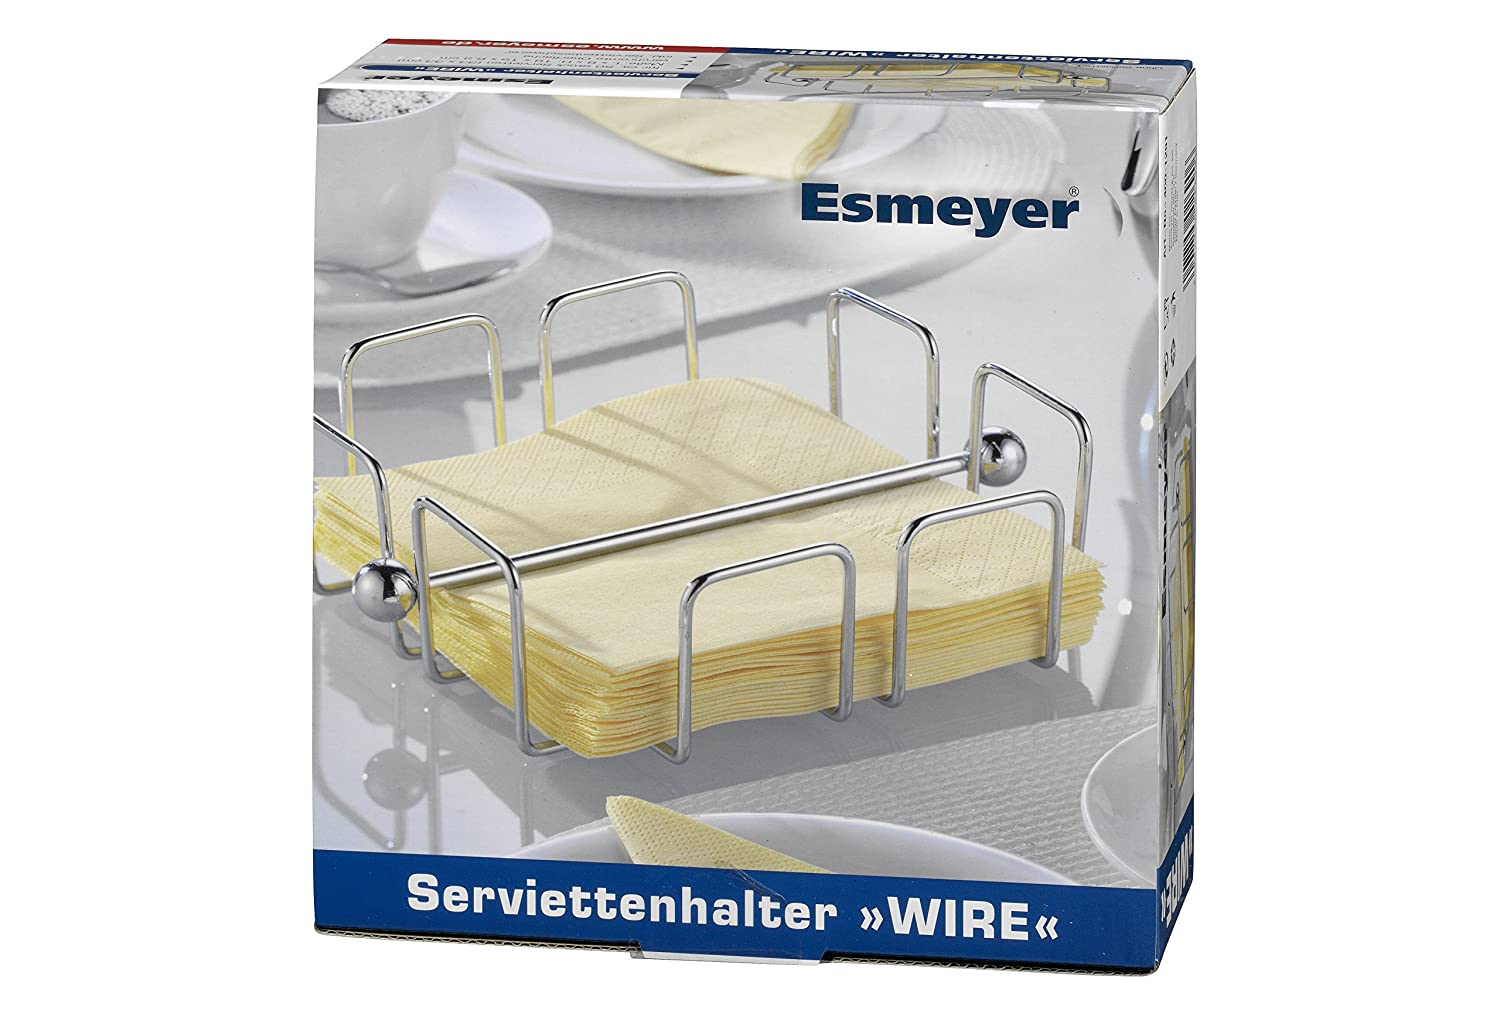 Esmeyer 400-1291 Servilletero Wire Esmeyer GmbH & Co. KG